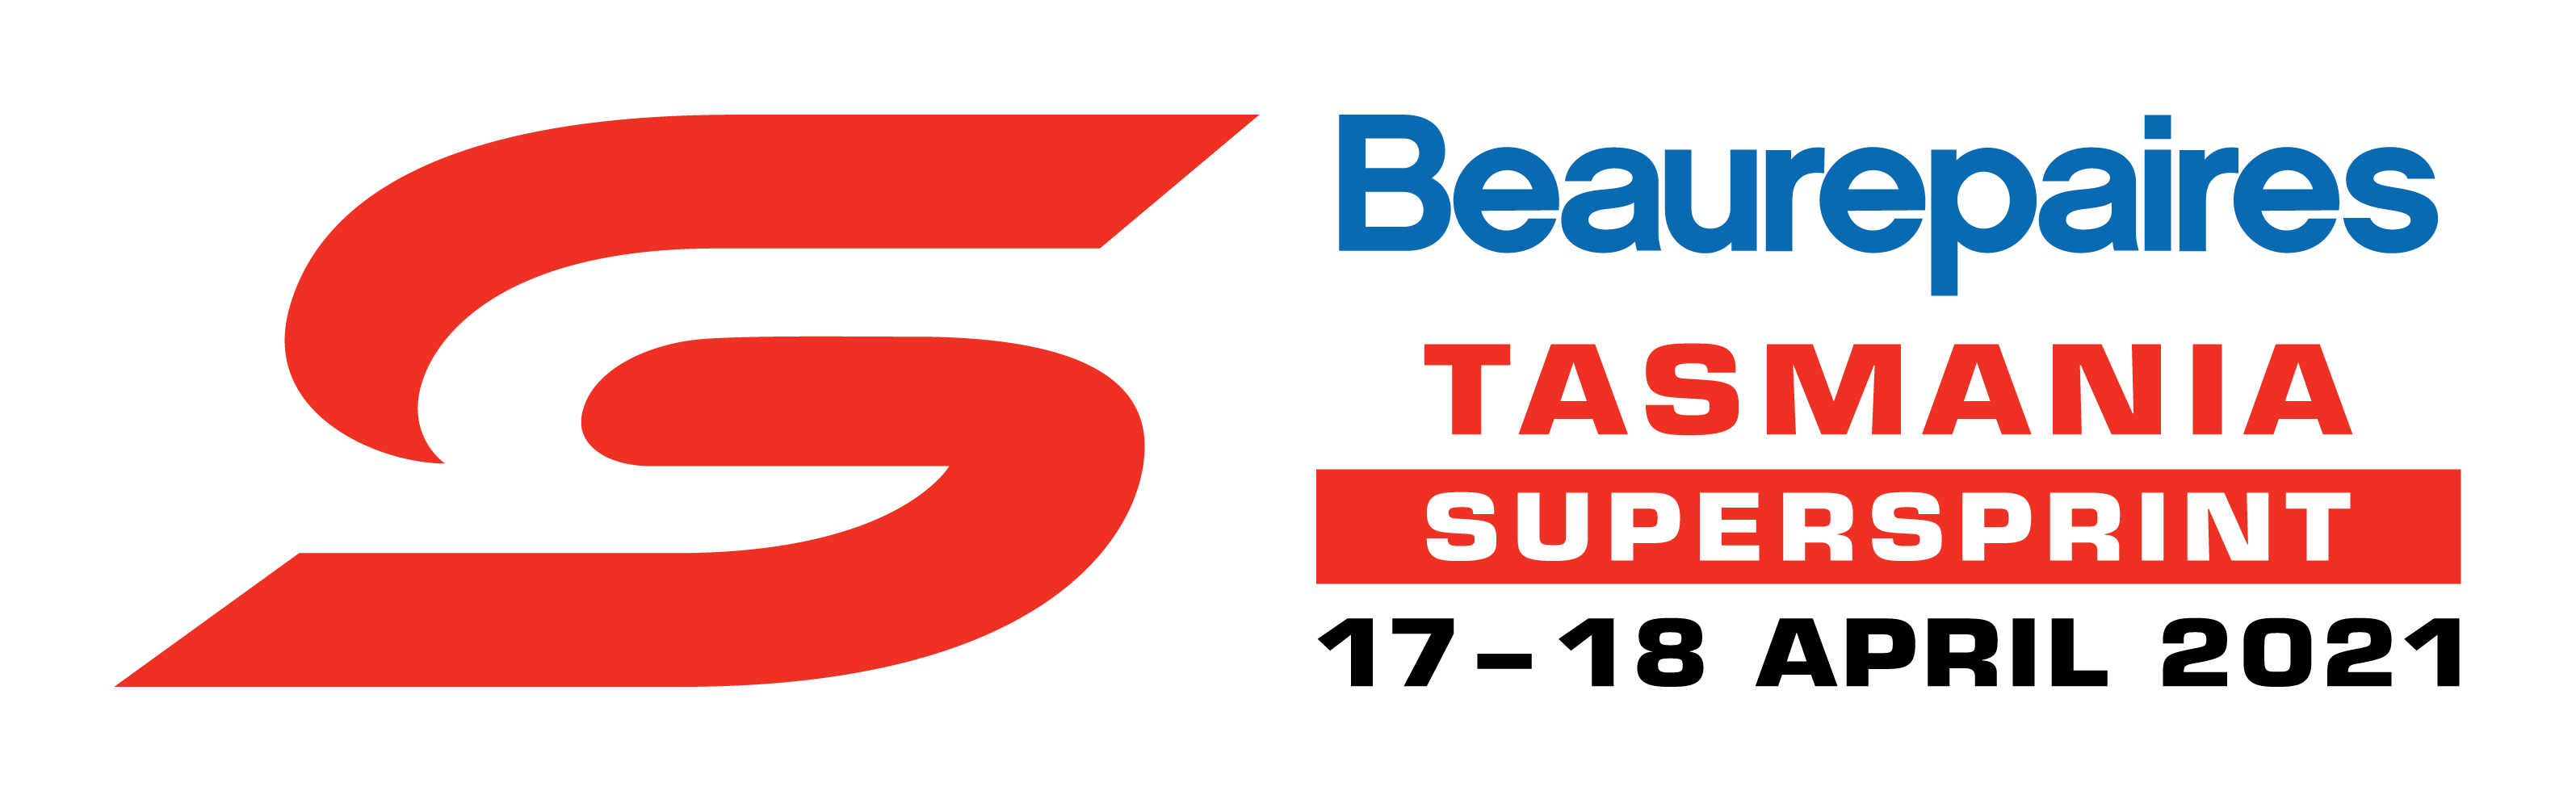 V8 Supercars - Beaurepaires Tasmania SuperSprint logo